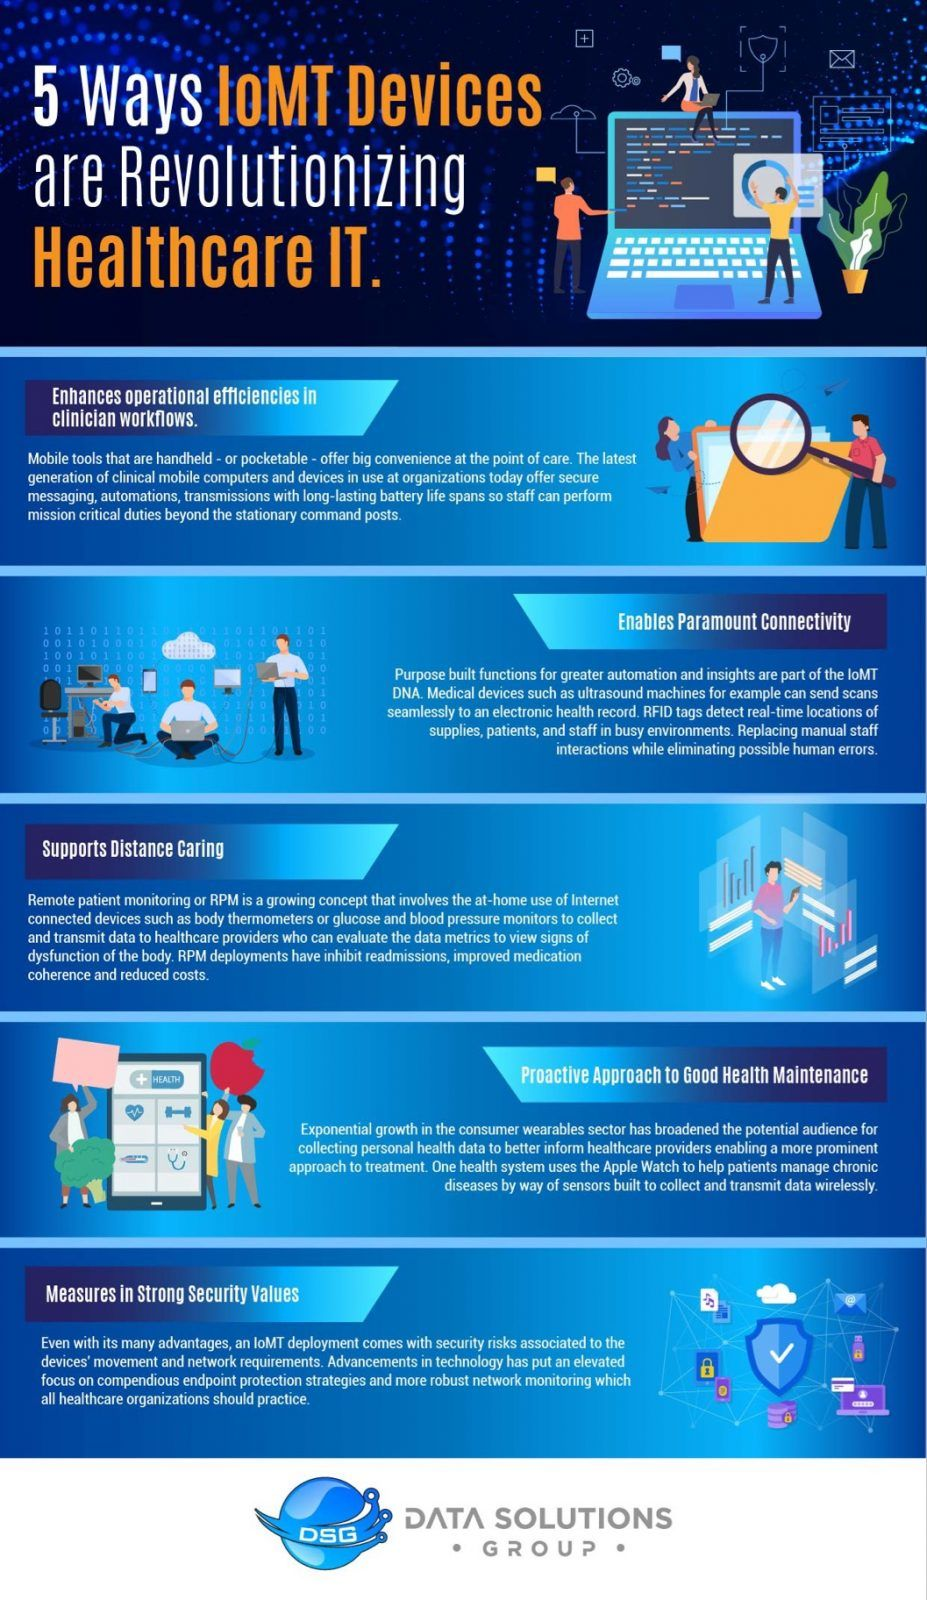 5 Ways IoMT Devices are Revolutionizing Healthcare IT (Infographic)